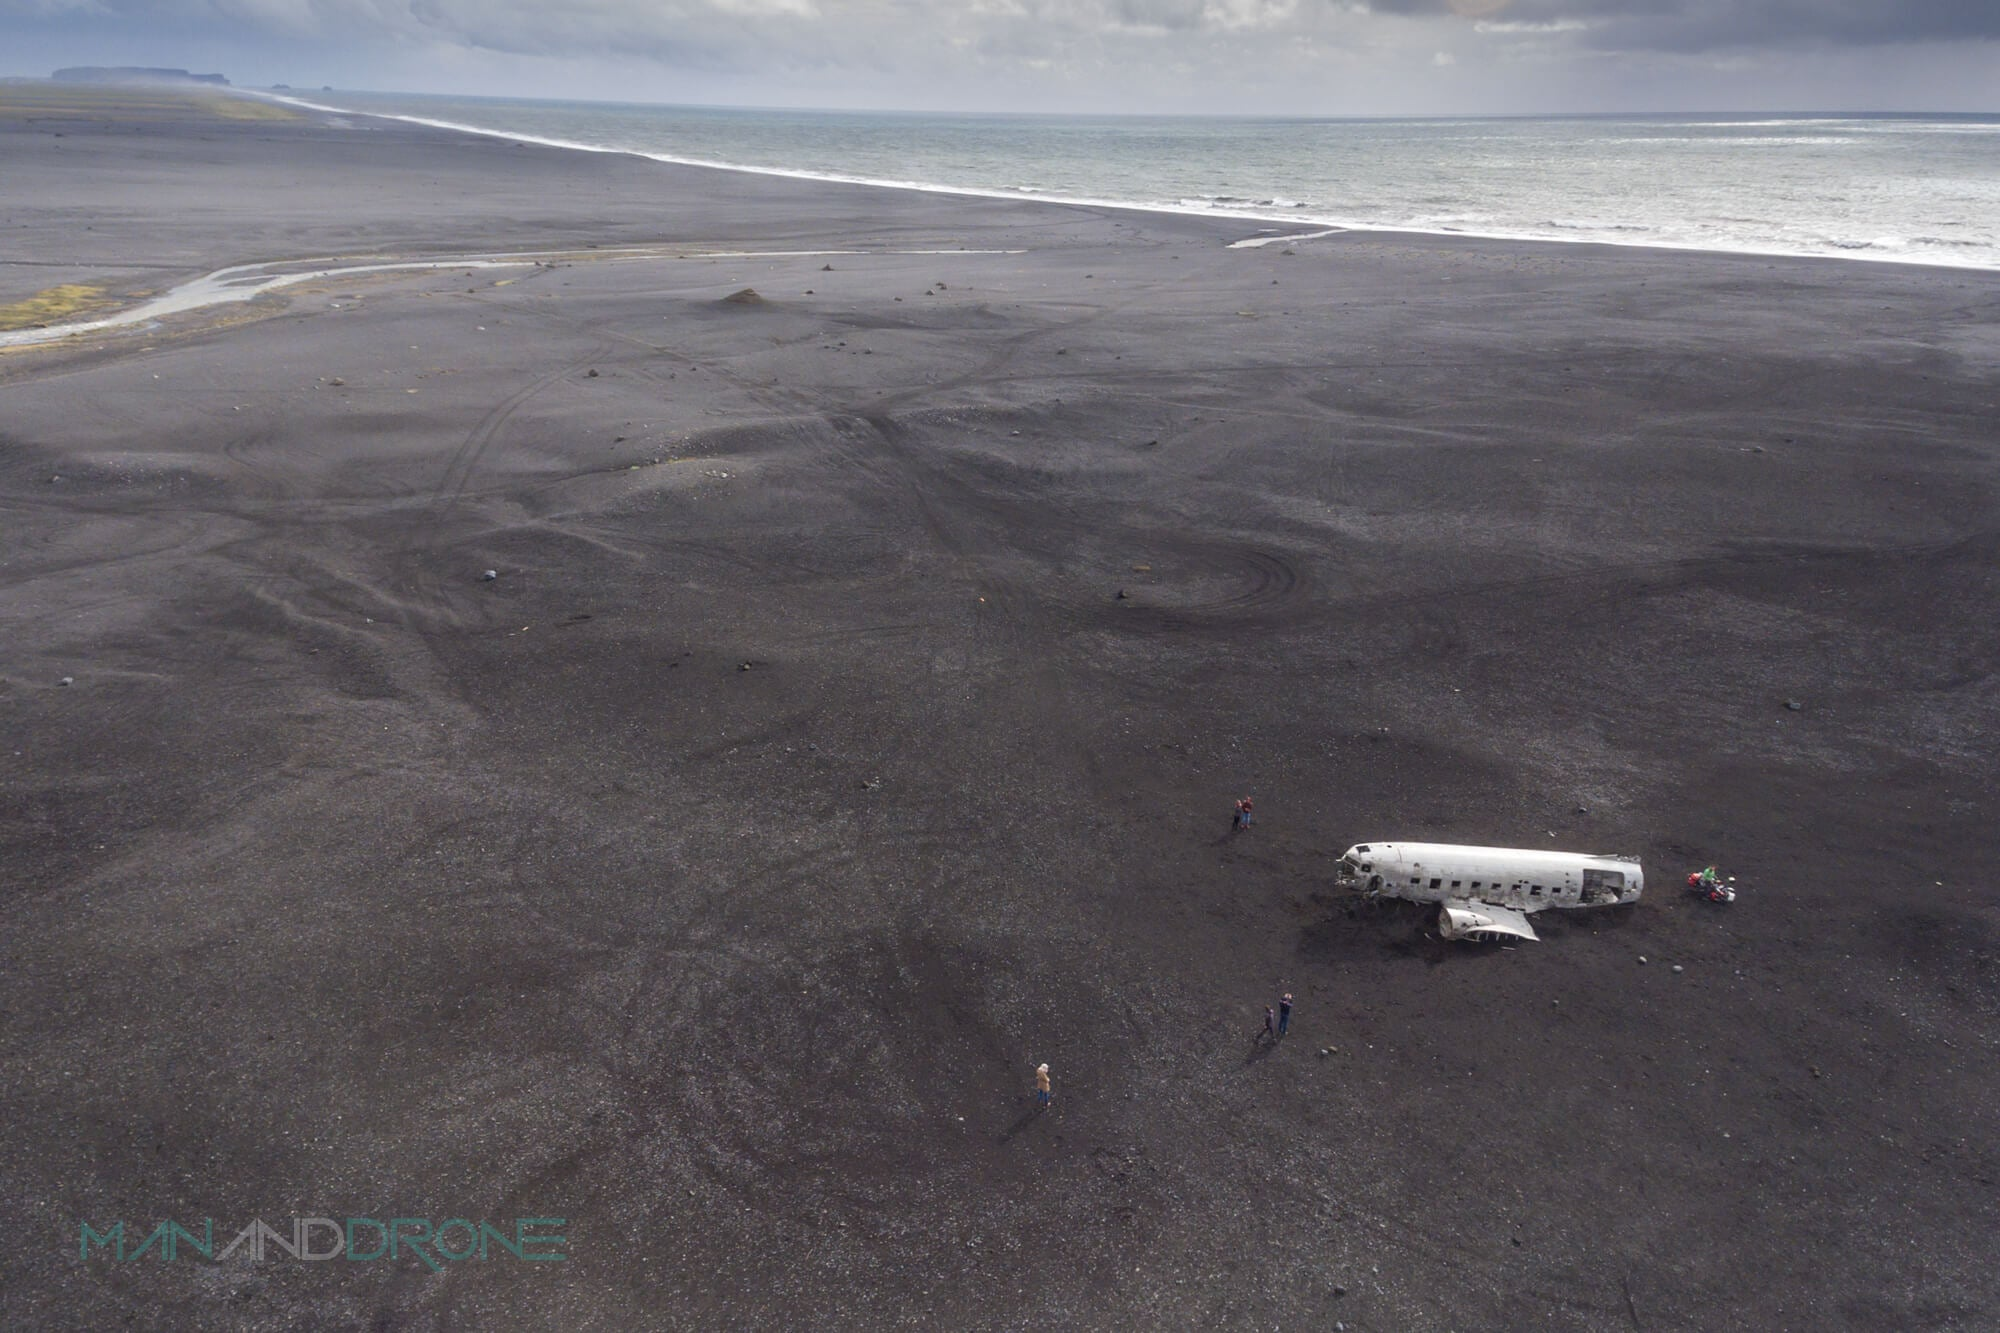 Drone-plane-wreck-iceland